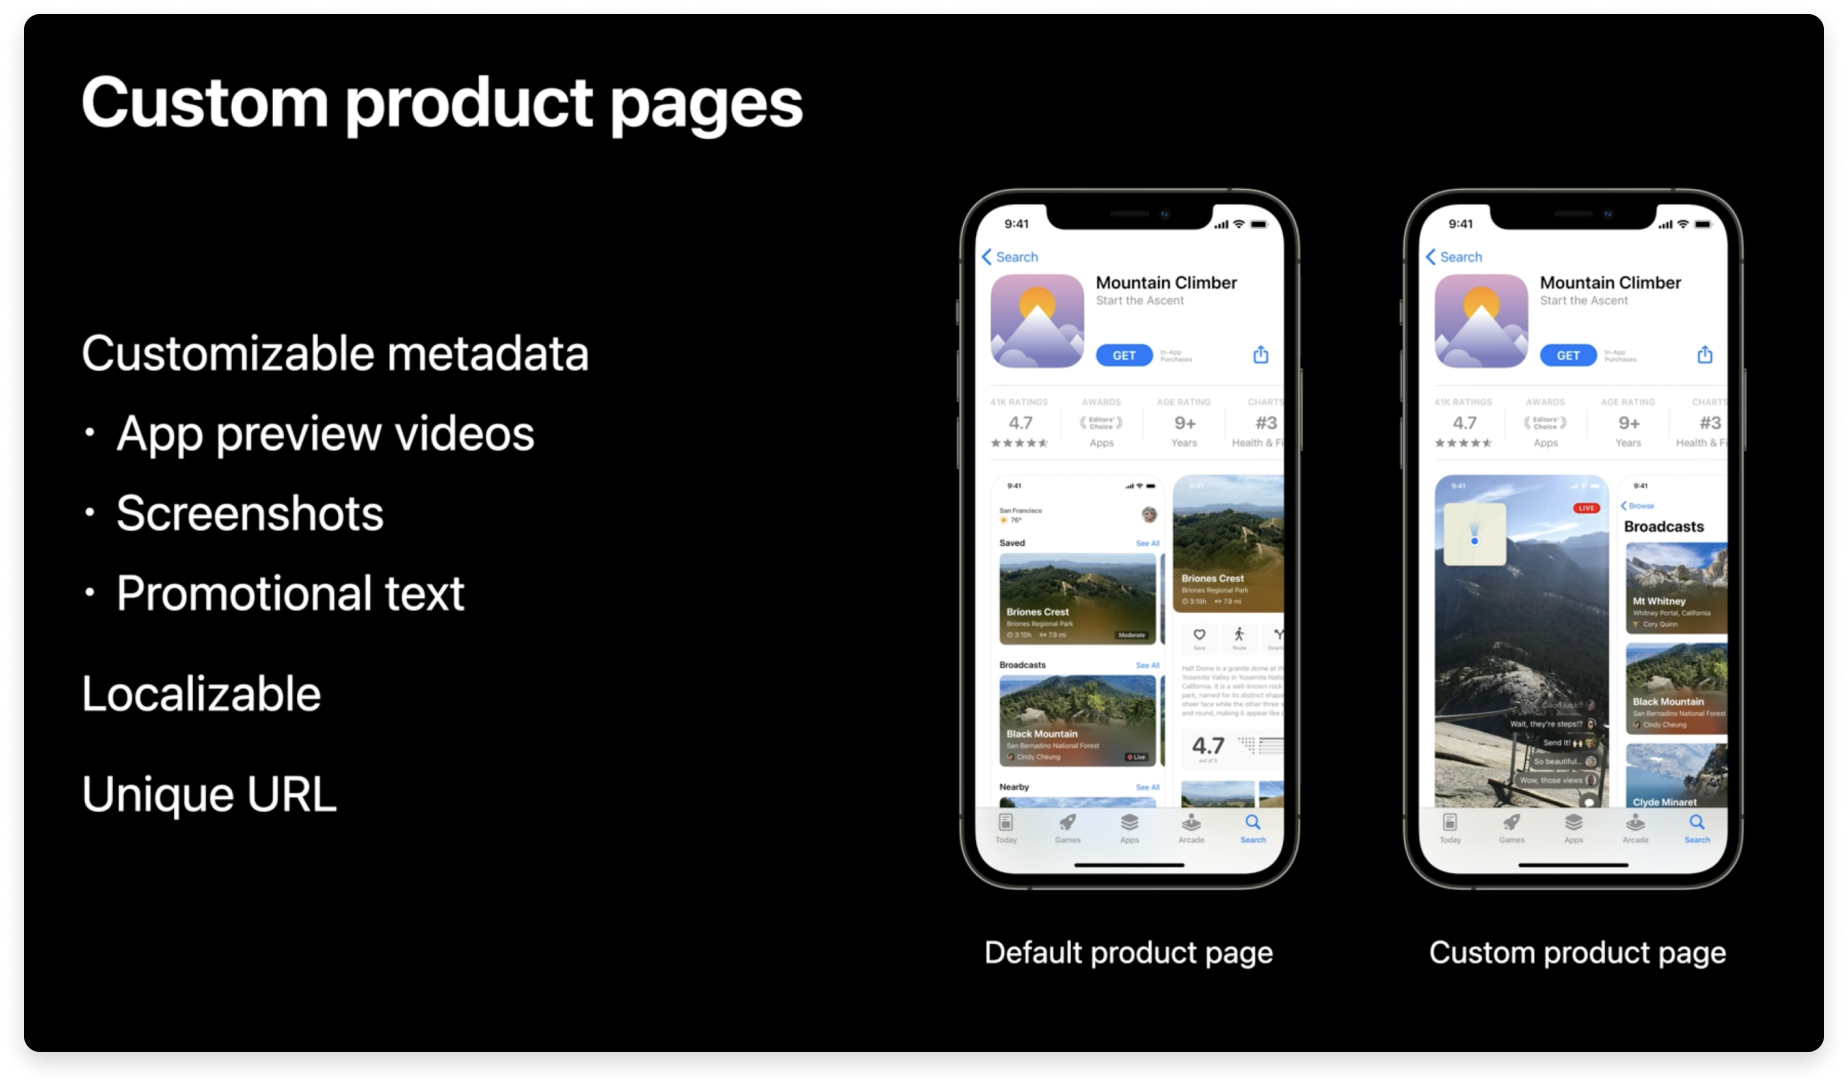 Apple's custom product pages will allow app marketers to customize their app preview videos, screenshots, and/or promotional text on the App Store. They will be localizable and accessible via a unique URL.